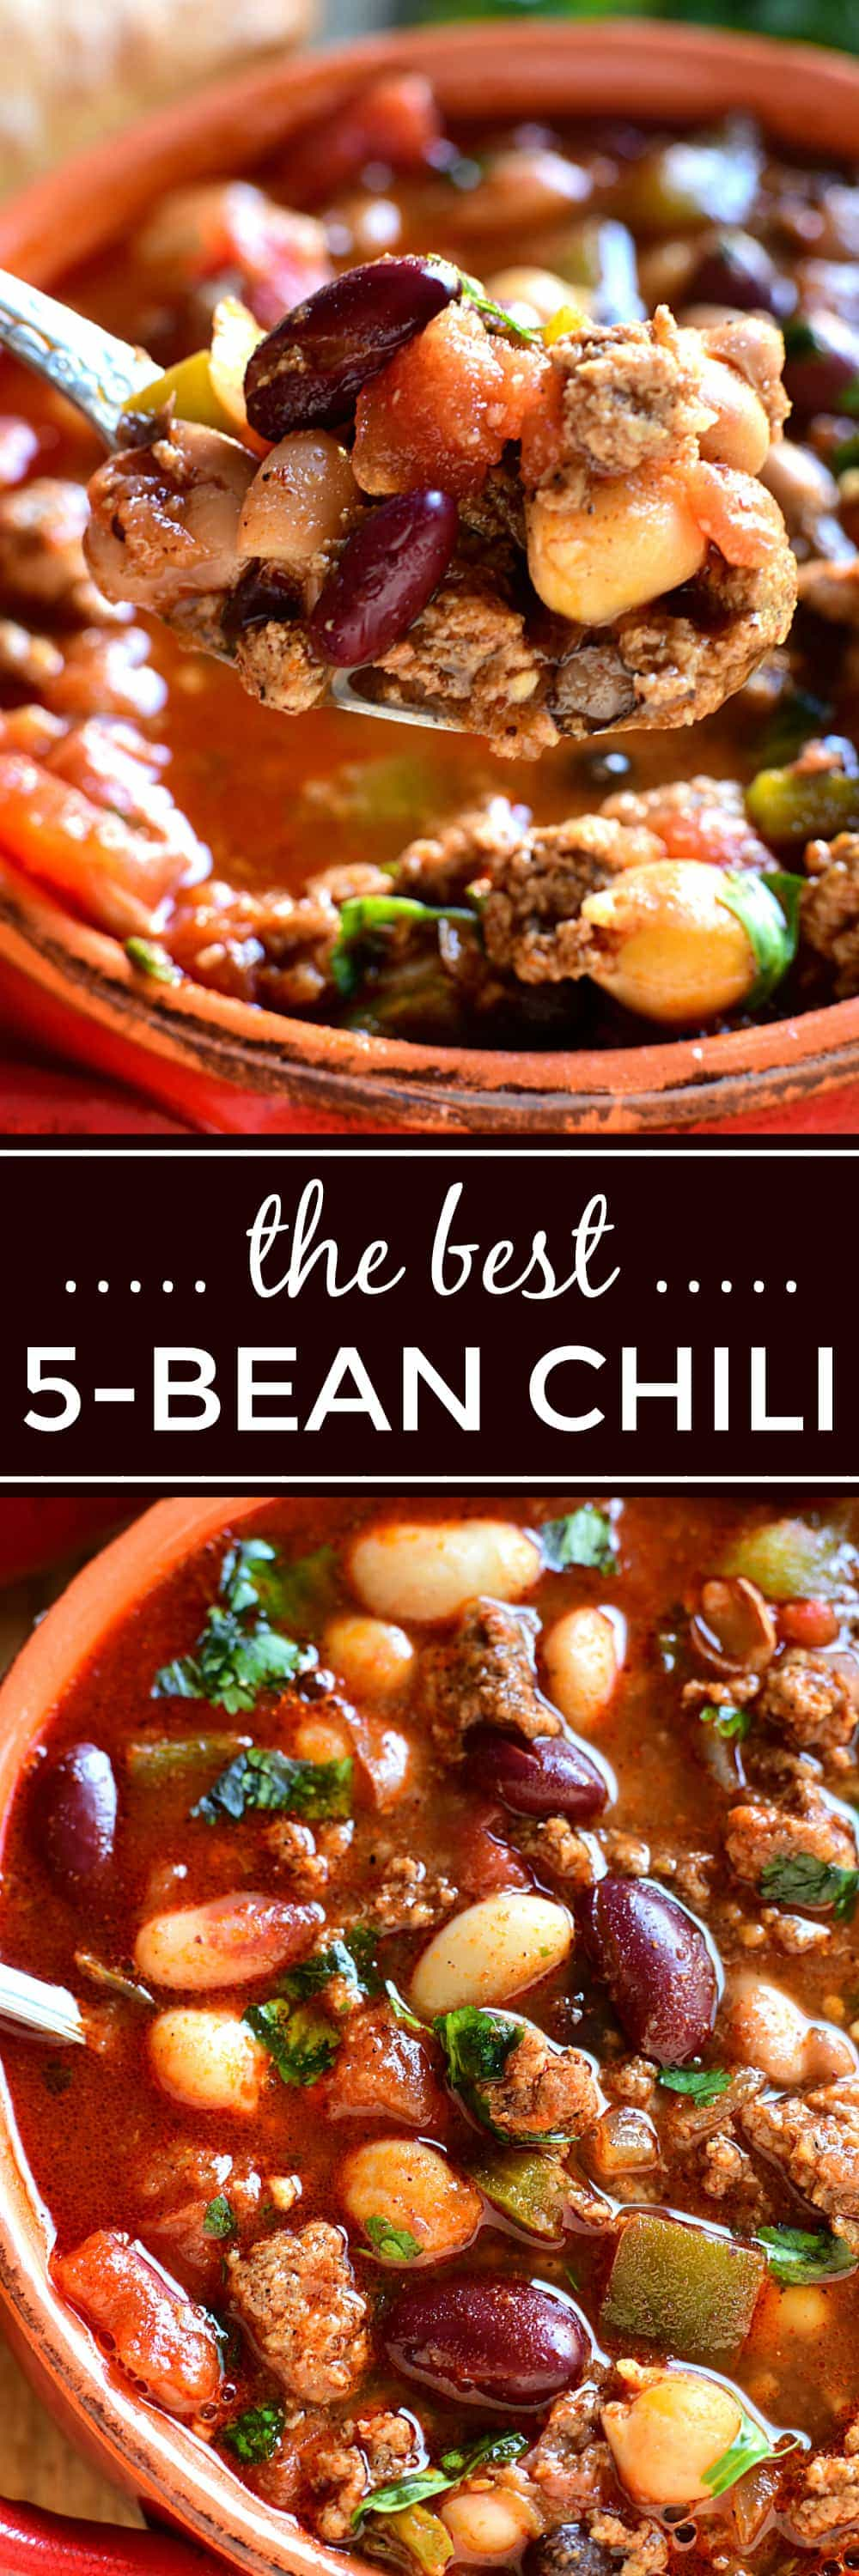 This 5 Bean Chili is loaded with fresh ingredients and packed with flavor. A deliciously satisfying meal that's also quick & easy to whip up!